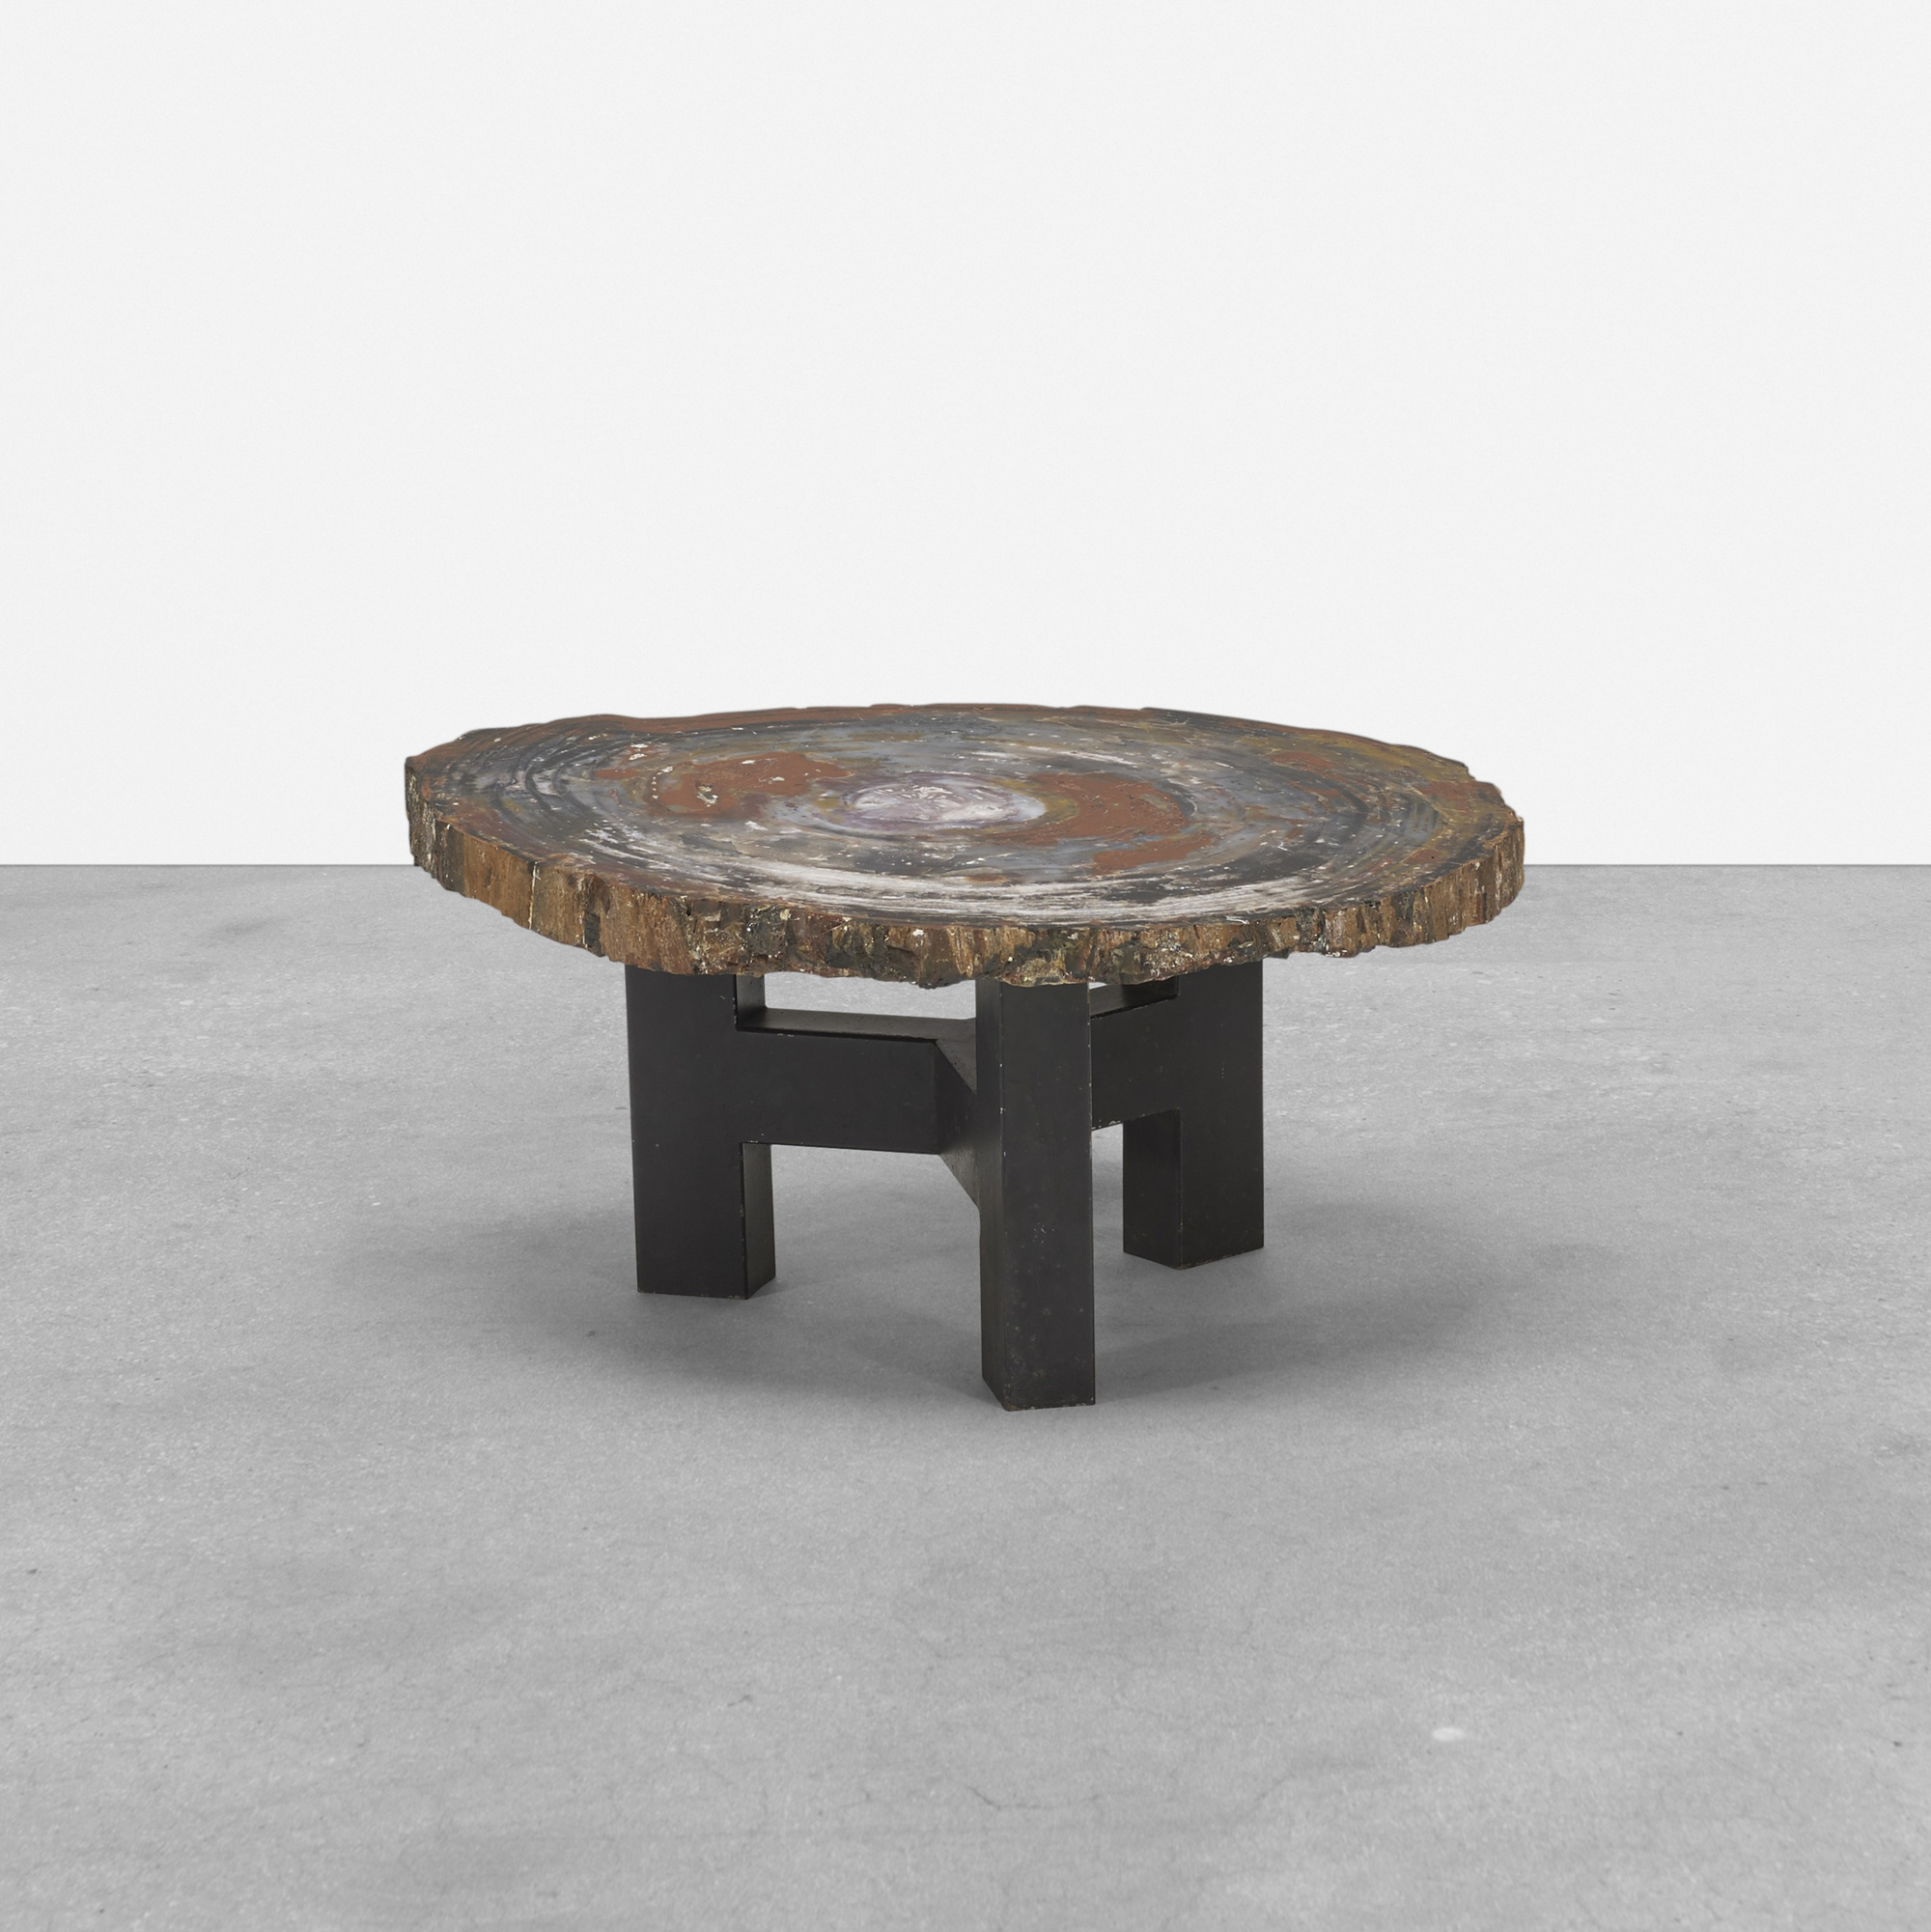 299: Ado Chale / occasional table (1 of 1)